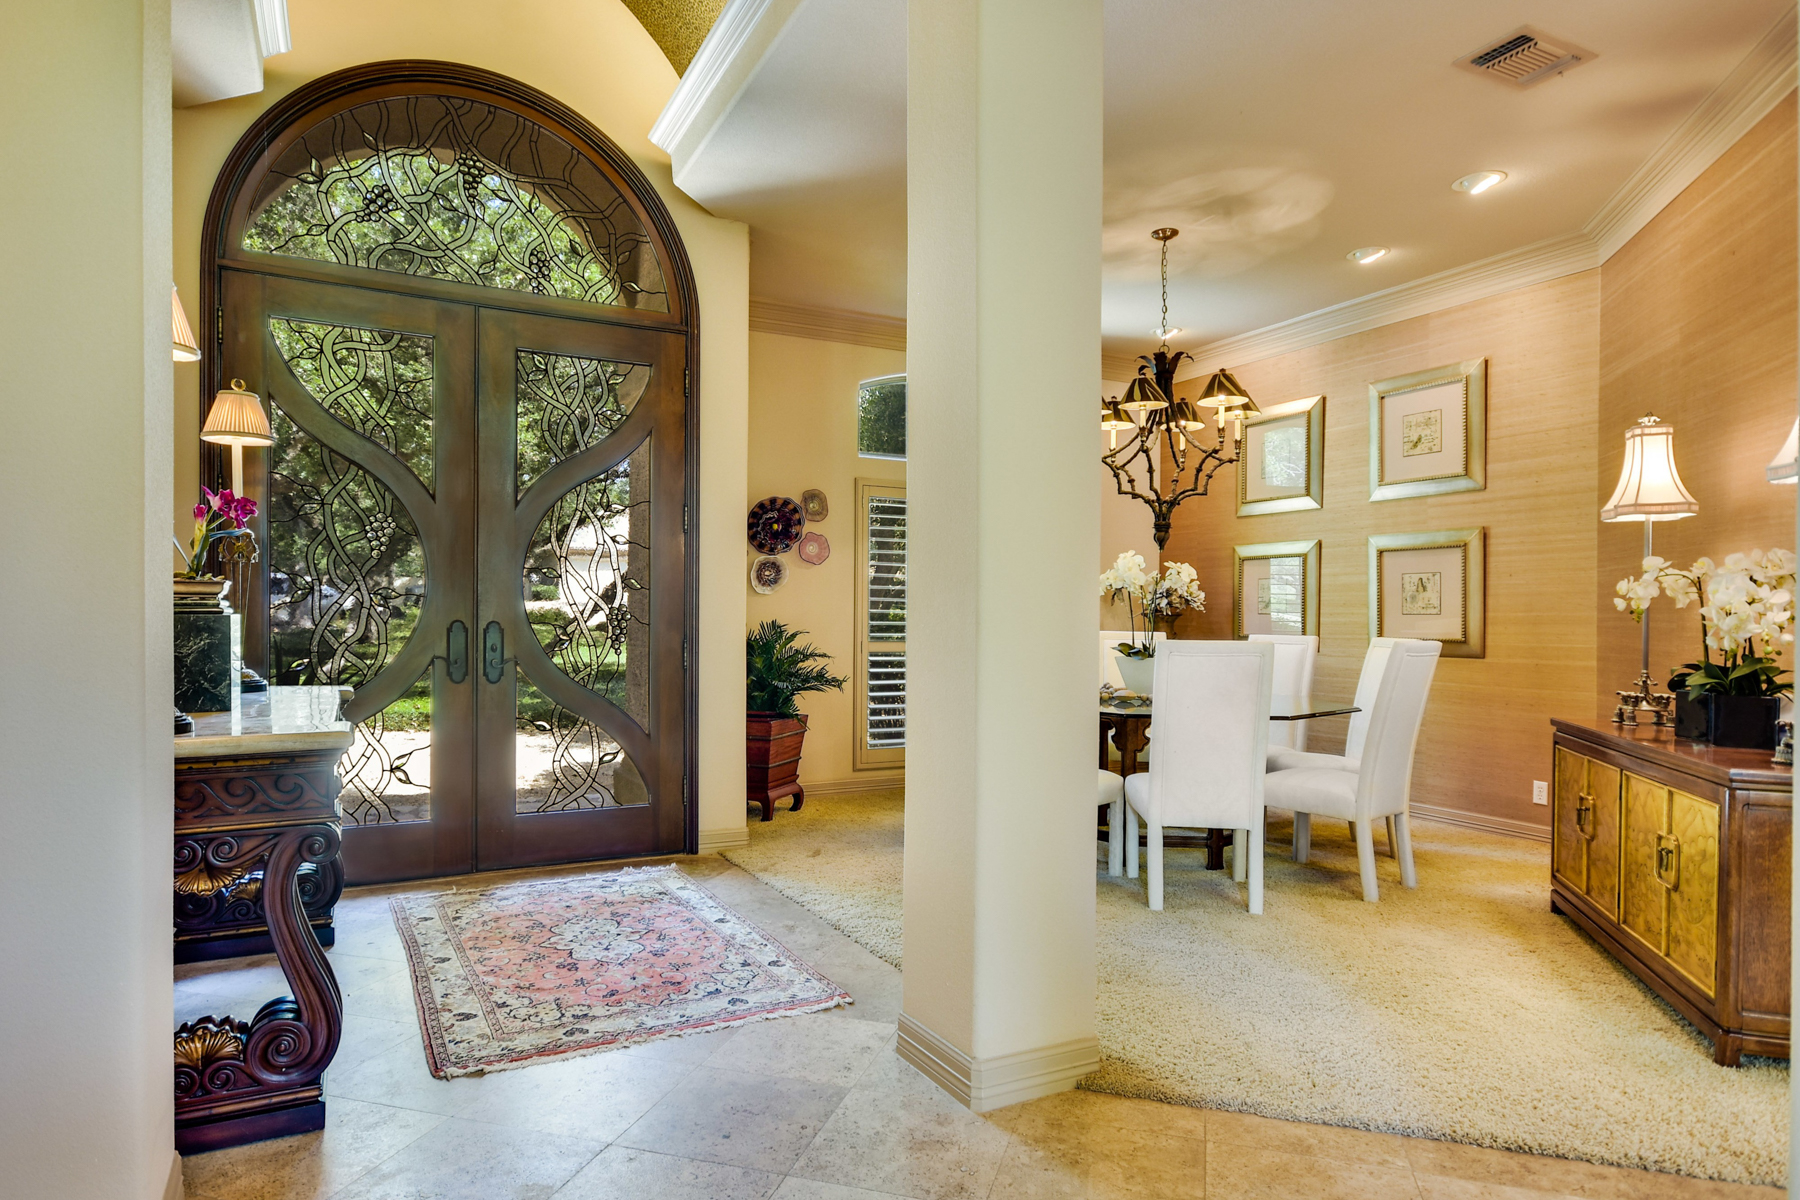 Additional photo for property listing at Custom One-Story Home in Shavano Park 310 Harvard Oak San Antonio, Texas 78230 United States